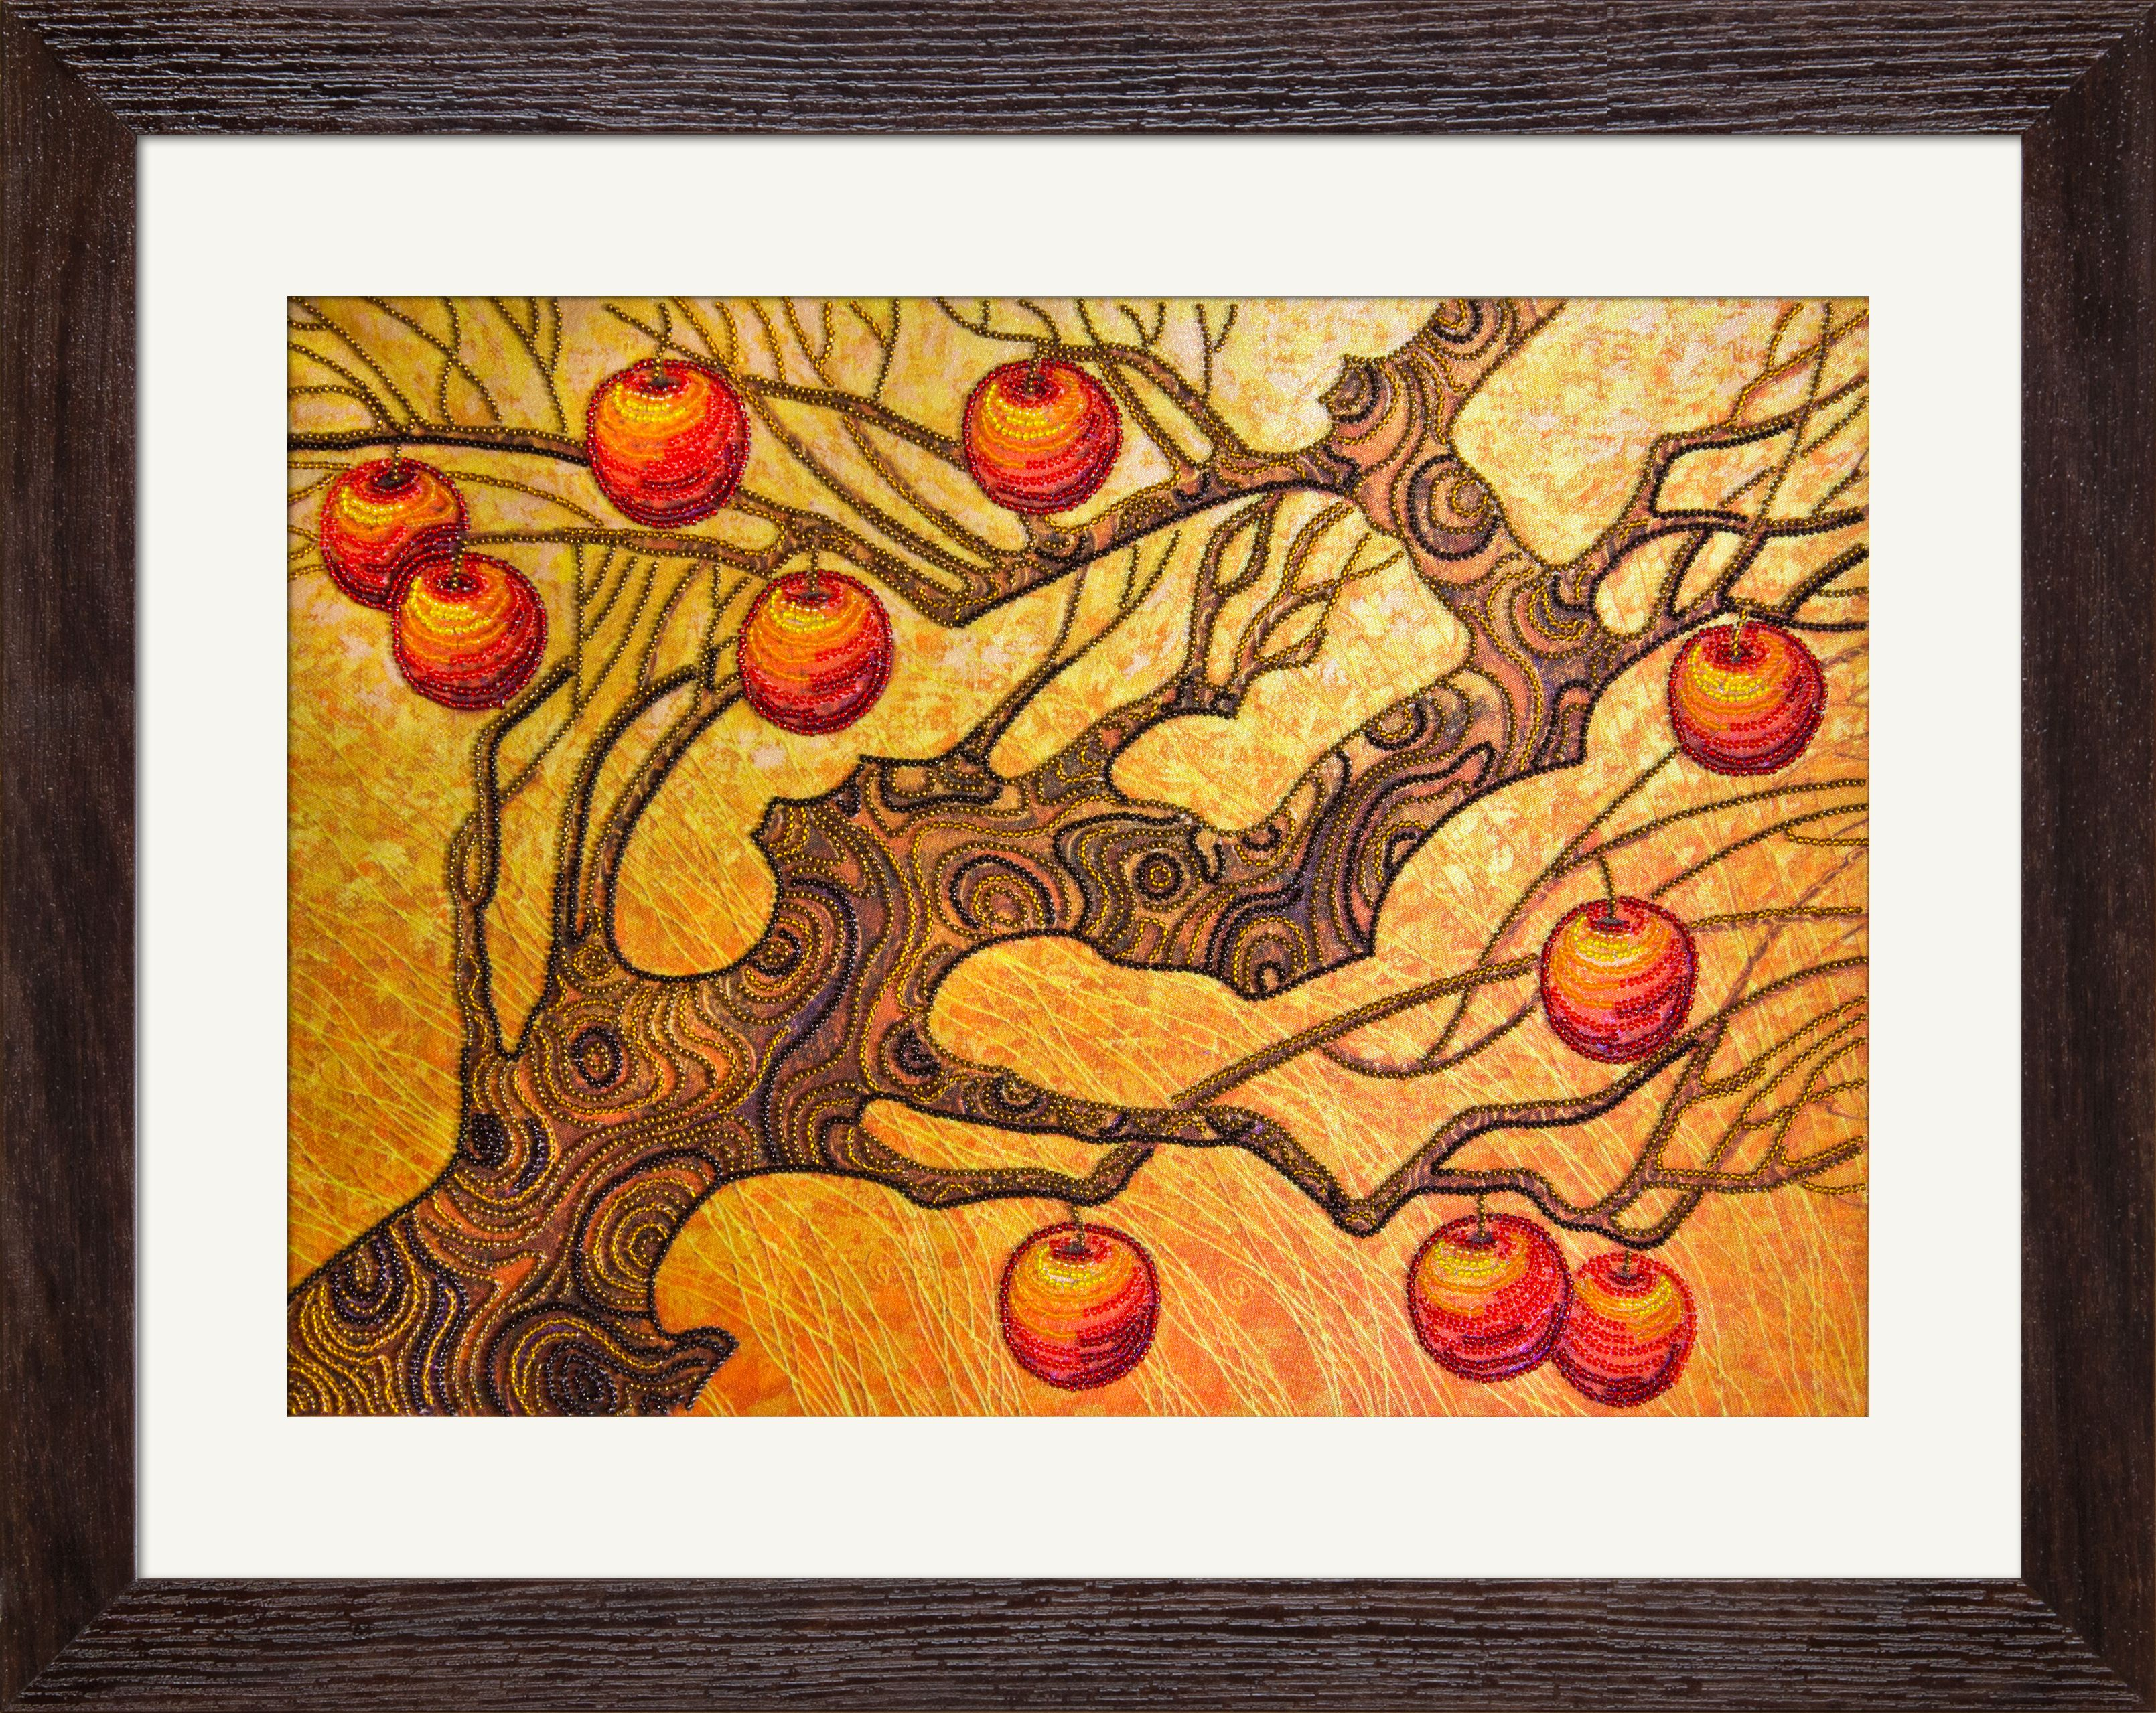 DK1008 Autumn garden. Bead embroidery kits #nova_sloboda #embroidery #handmade #tree #apple